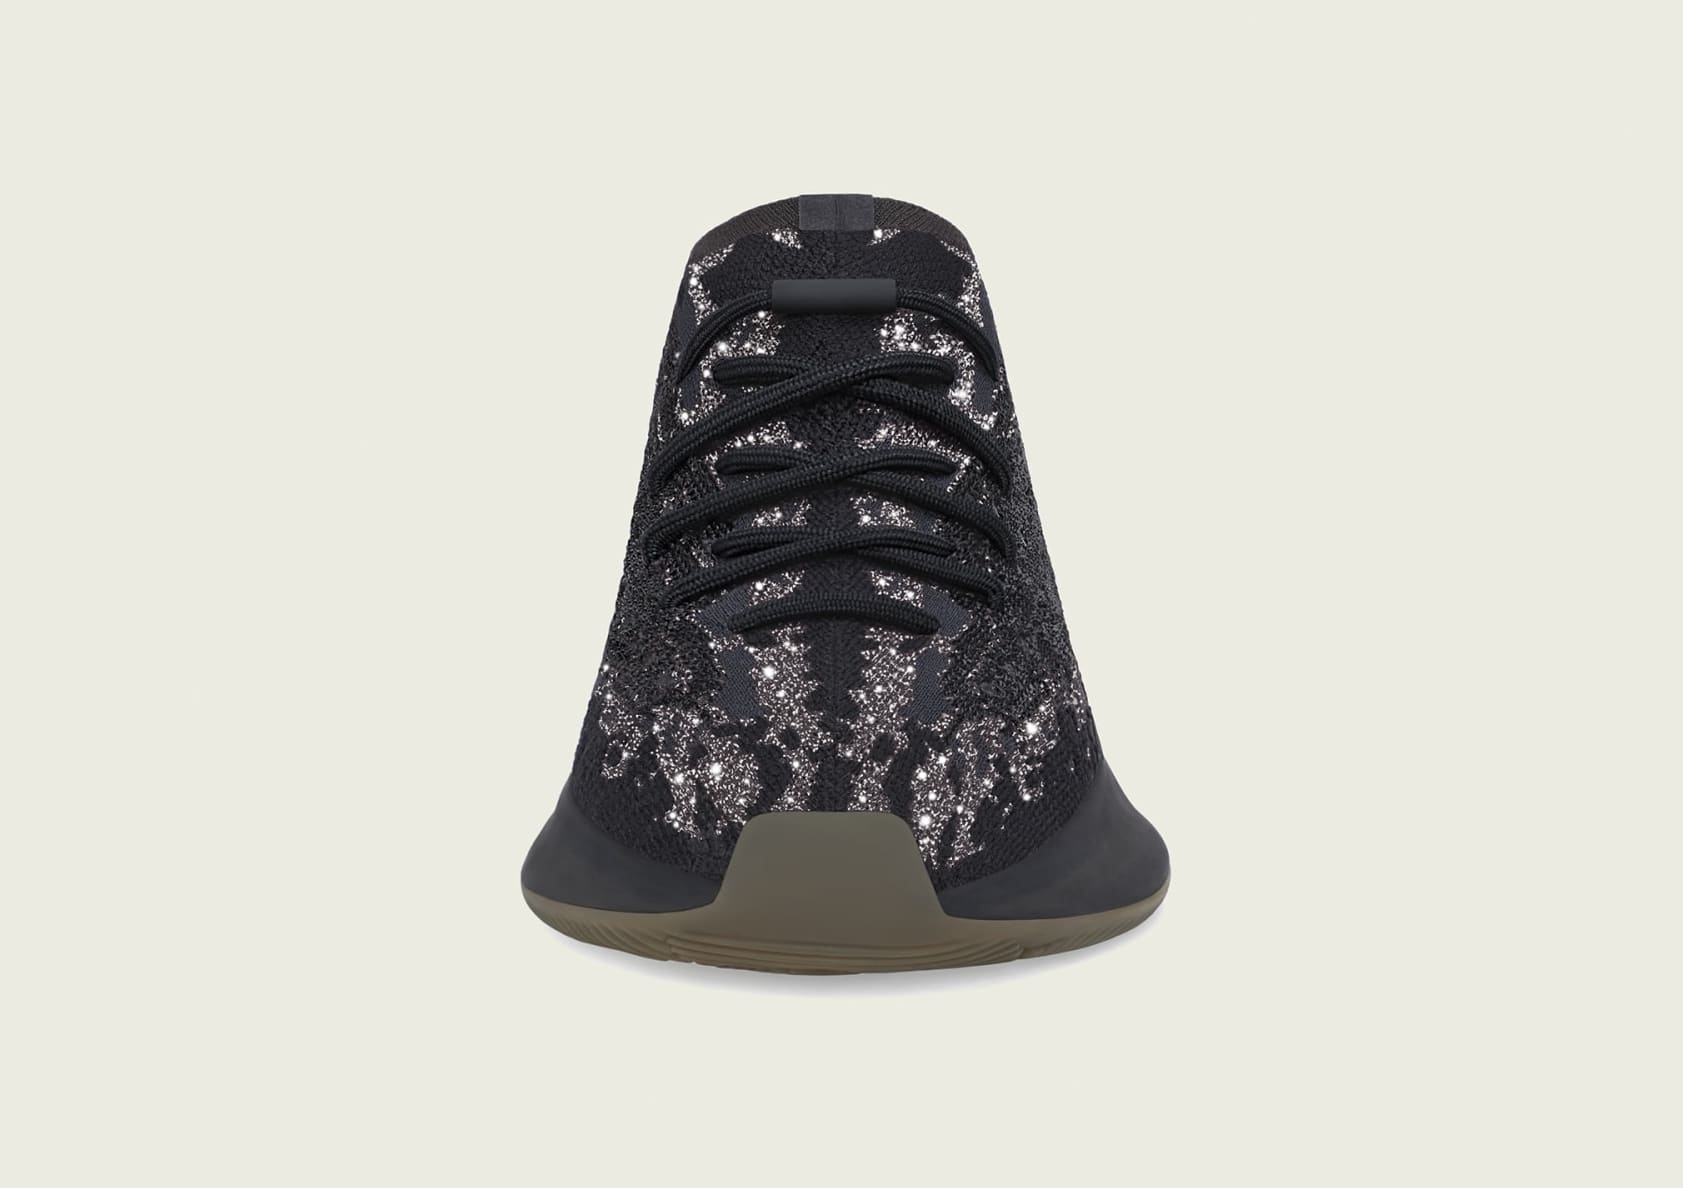 Adidas Yeezy Boost 380 'Onyx Reflective' H02536 Front